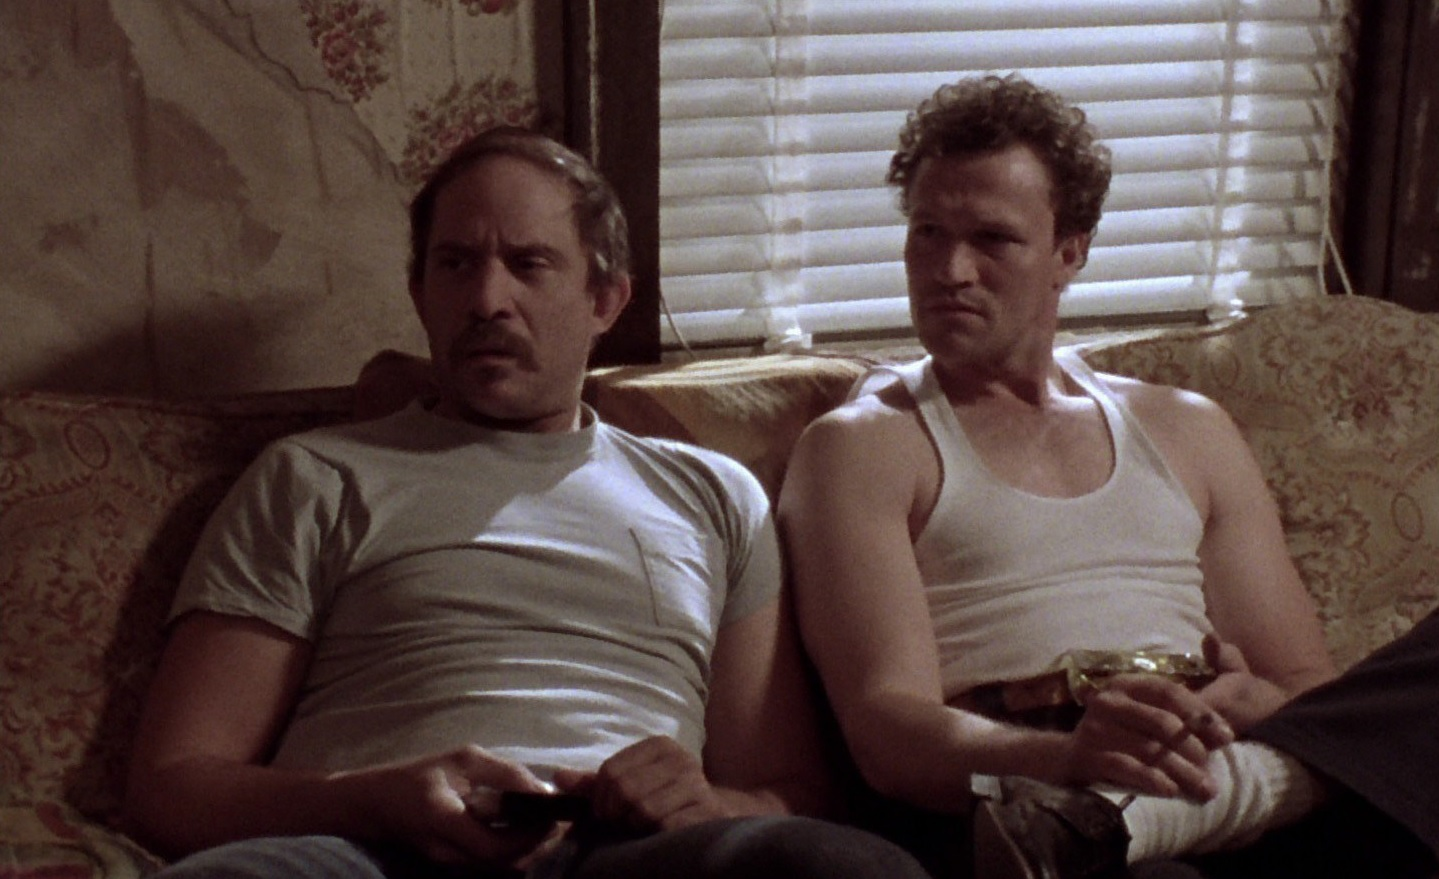 Tom Towles and Michael Rooker in Henry: Portrait of a Serial Killer